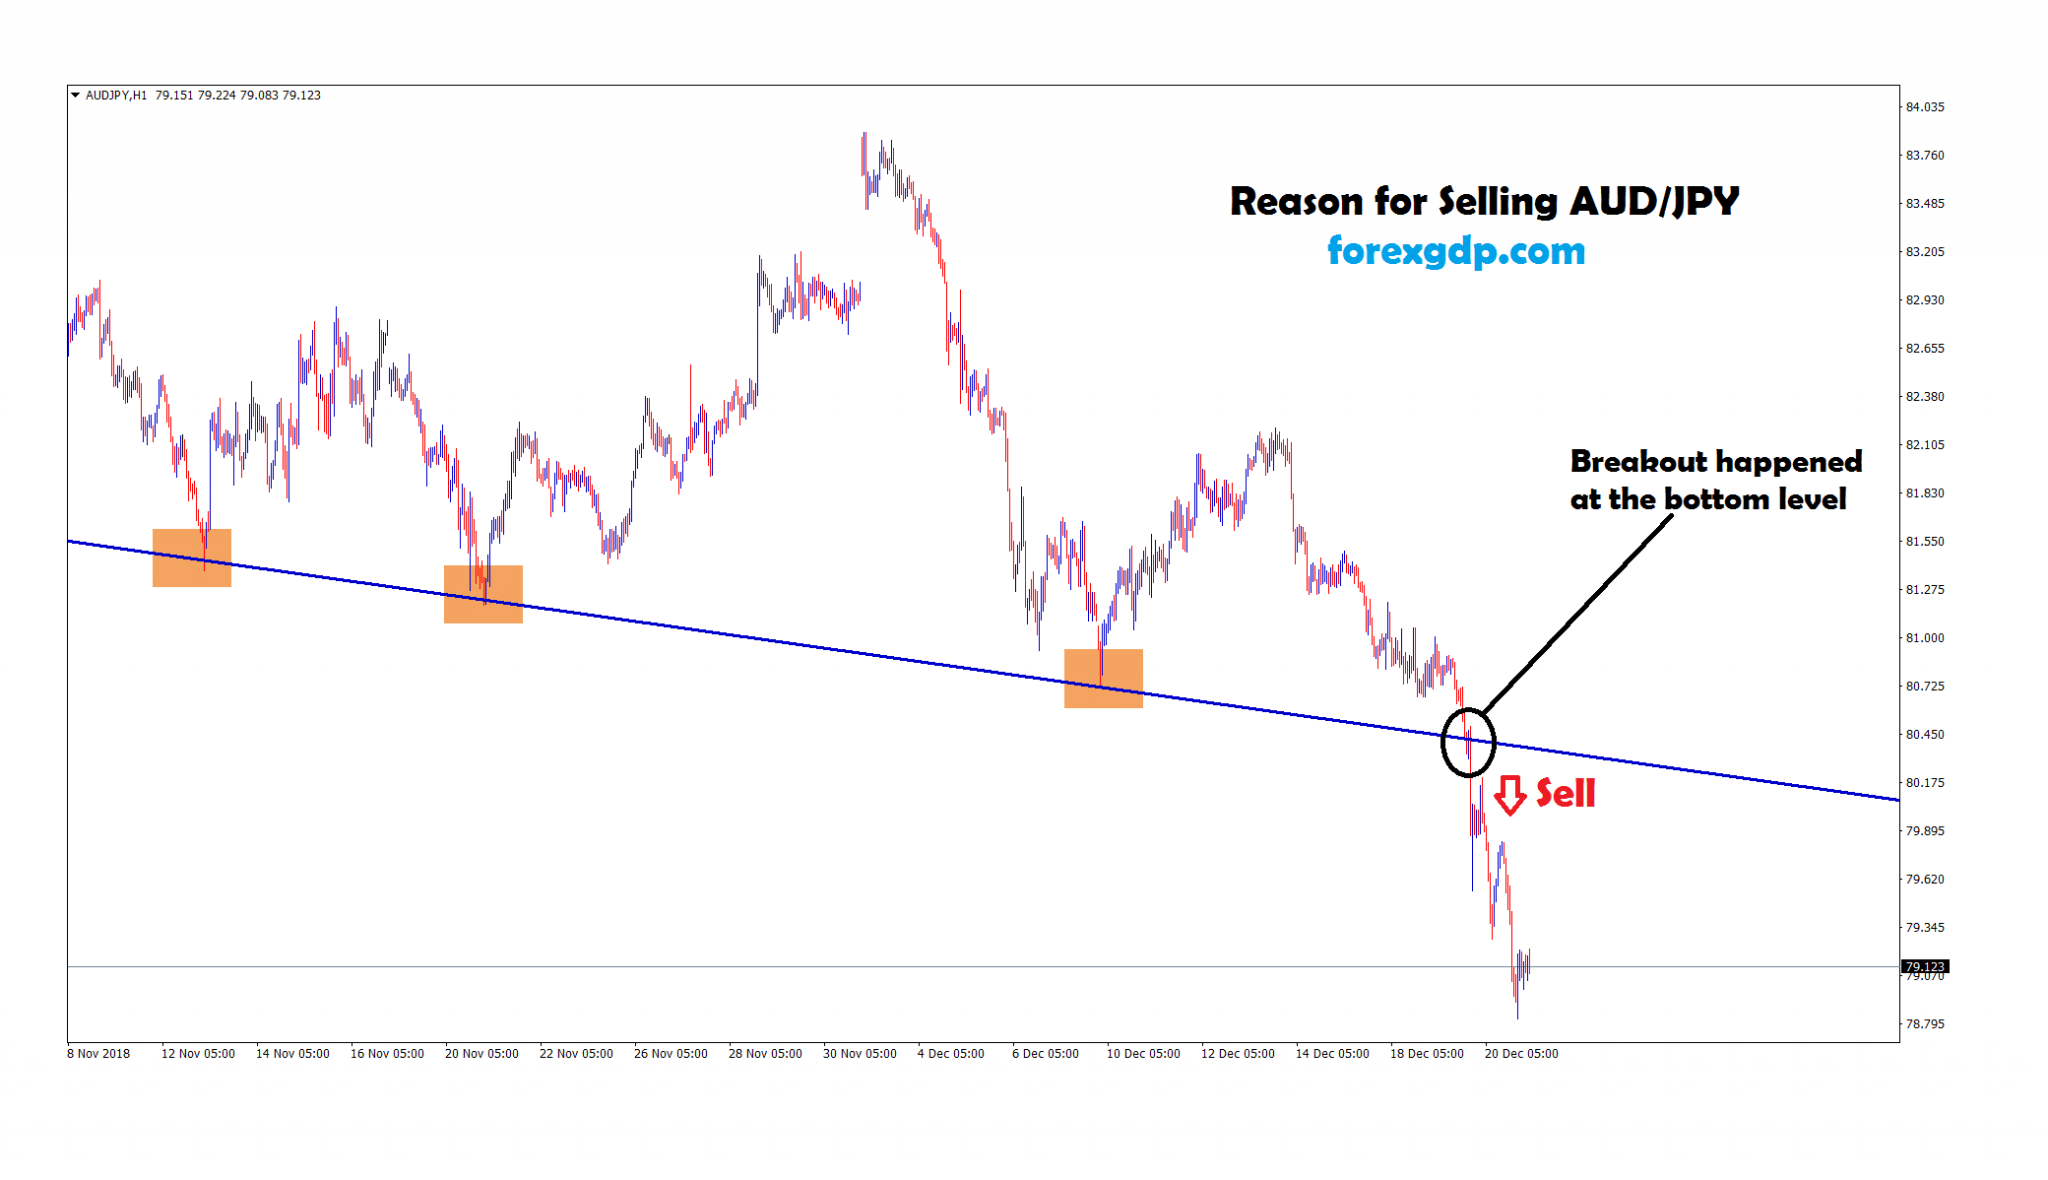 sell signal given after the breakout at the bottom